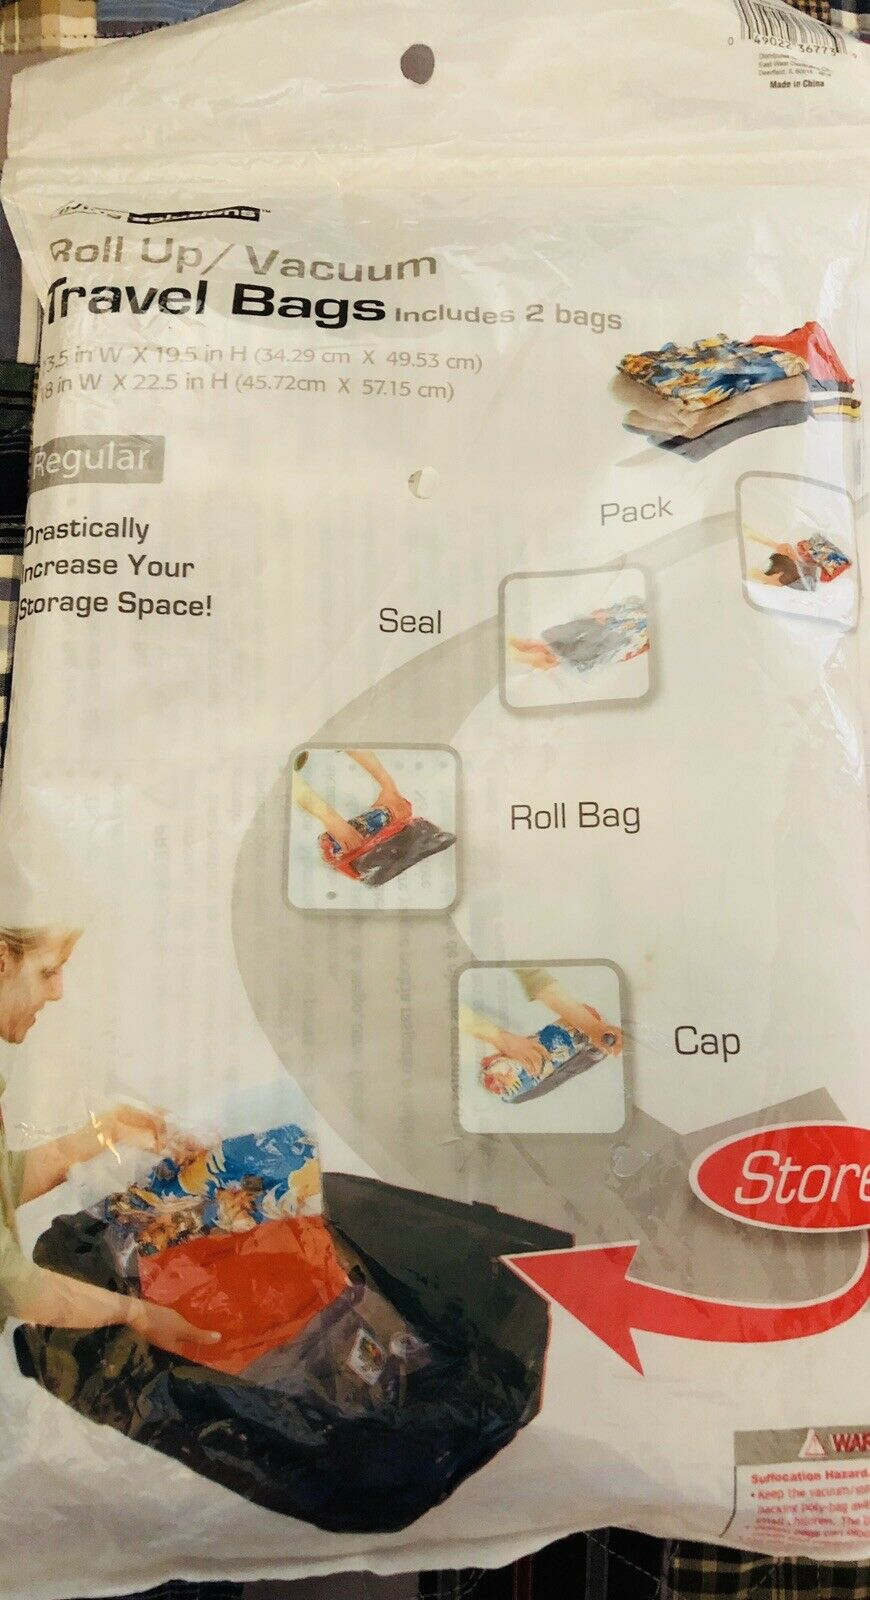 Roll Up/Vacuum Travel Bags - Living Solutions